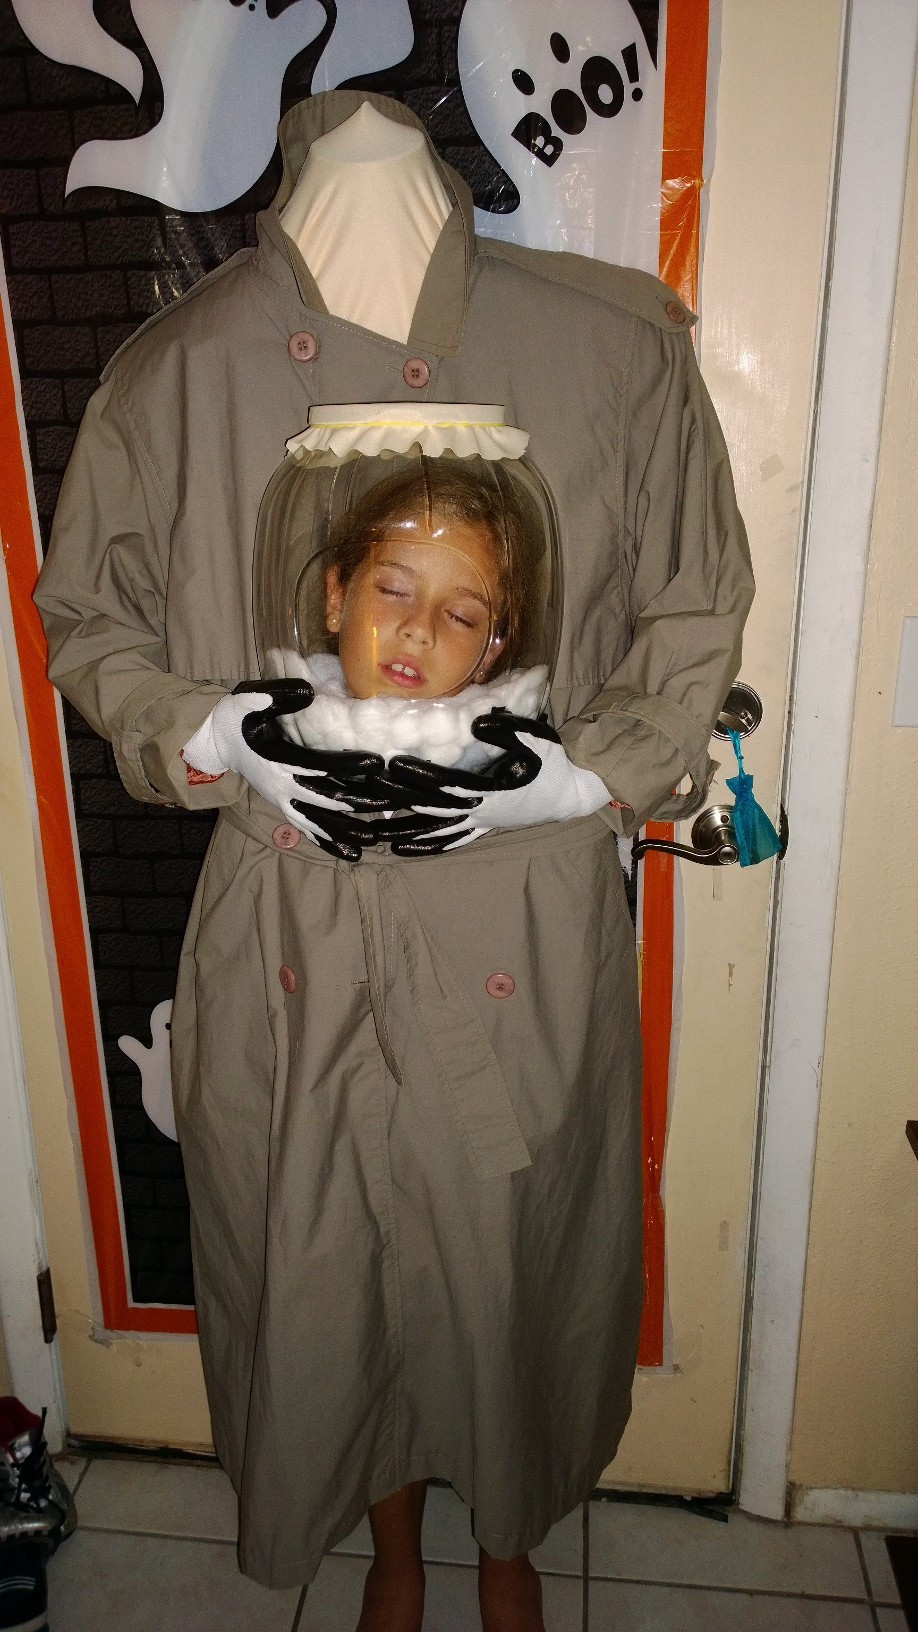 Best ideas about Best DIY Costumes . Save or Pin Best DIY Headless Costume Now.